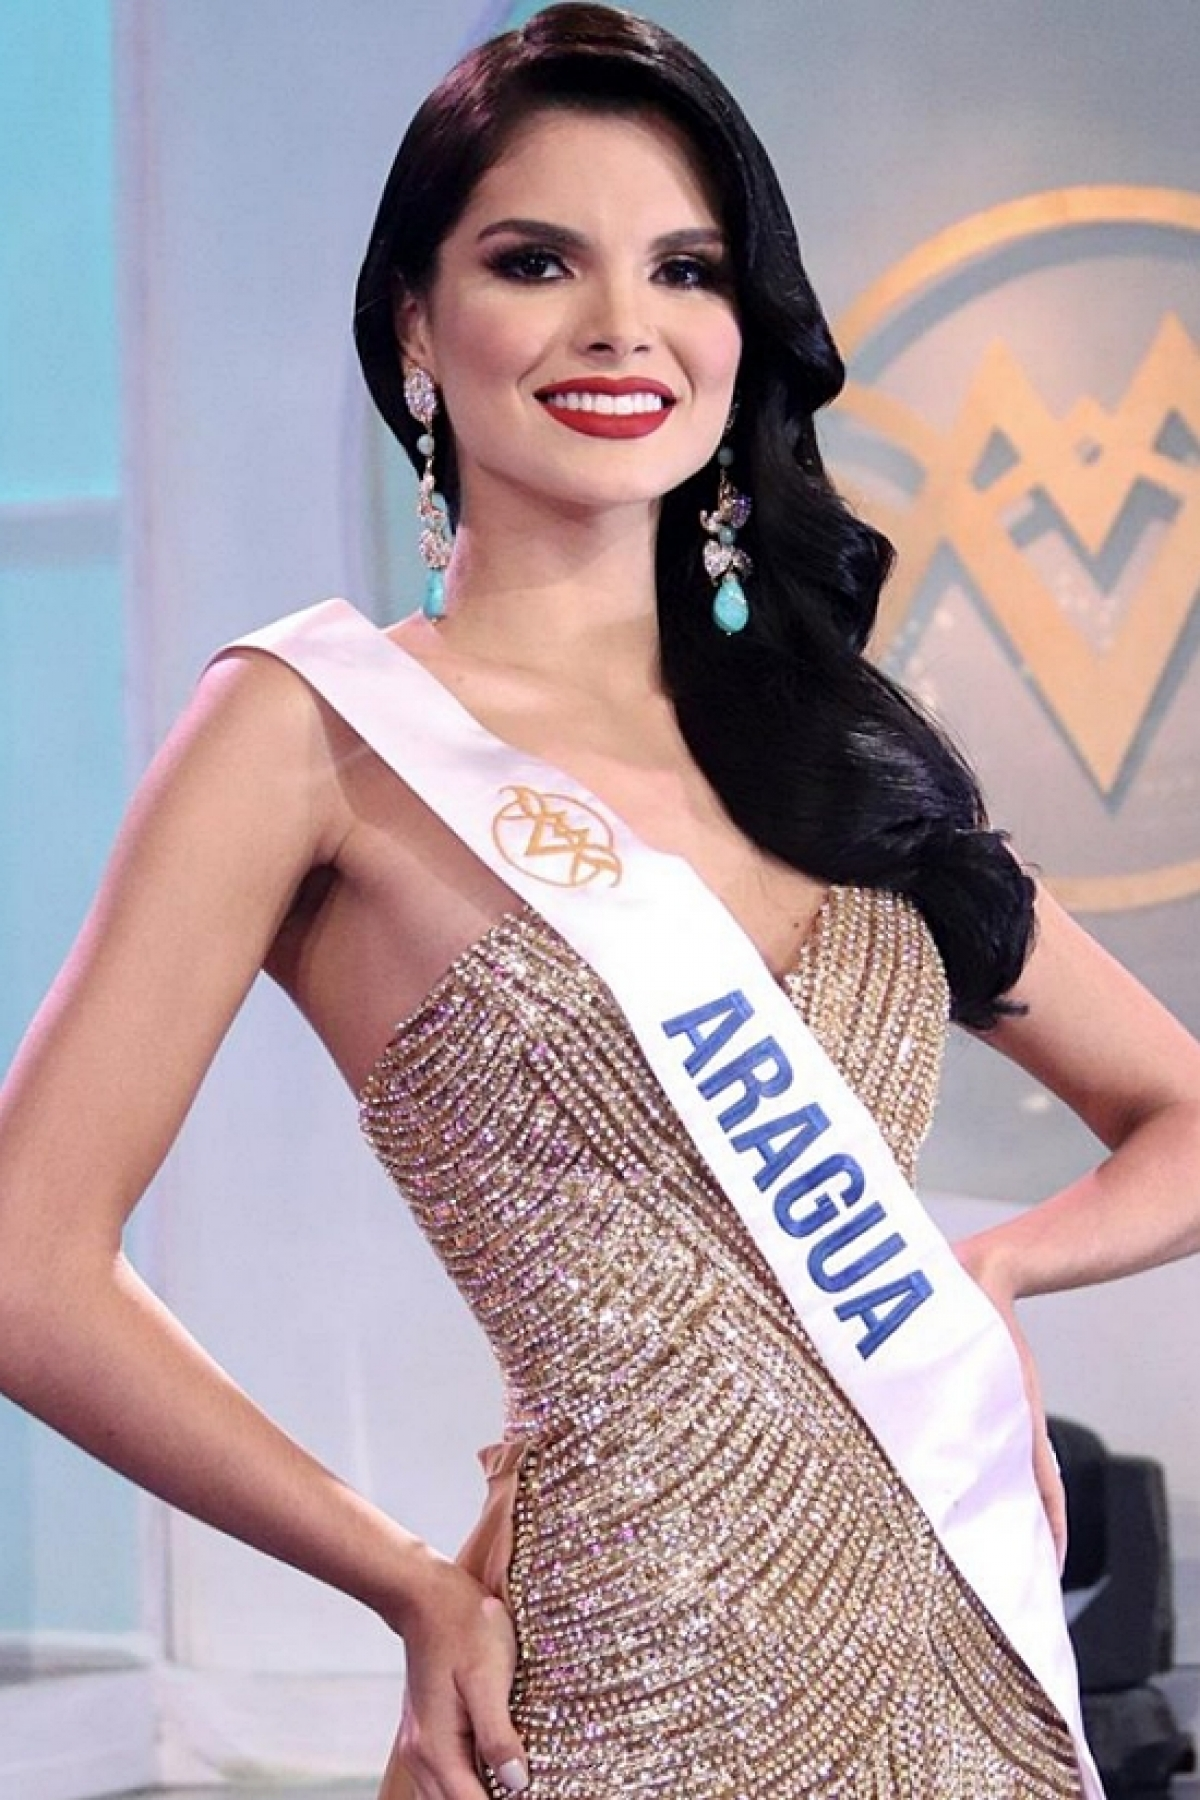 Alejandra Conde was selected as Venezuela's representative for the international beauty contest after recently being named winner of the Miss World Venezuela 2020 pageant.